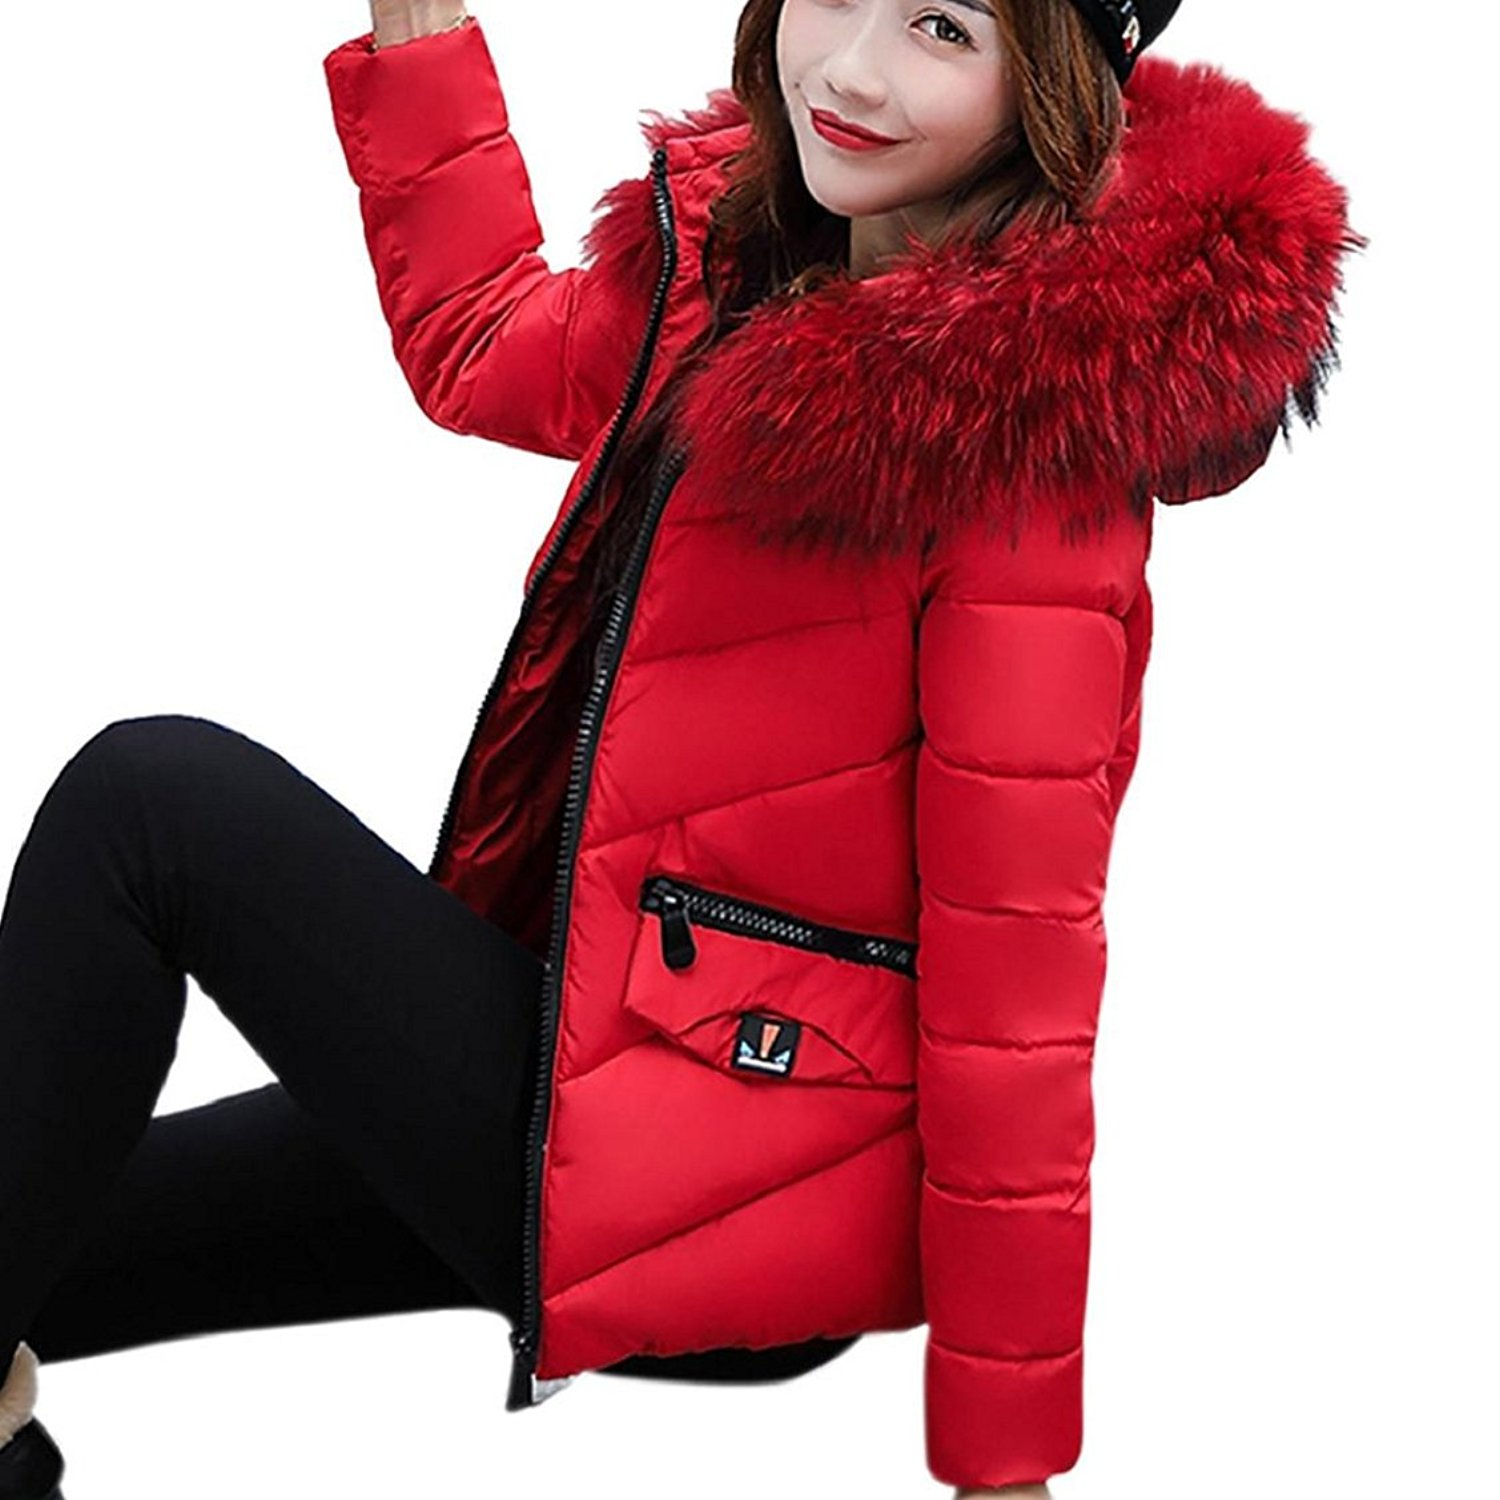 Vovomay Winter Warm Women Patchwork Casual Coat Thicker Slim Down Lammy Overcoat